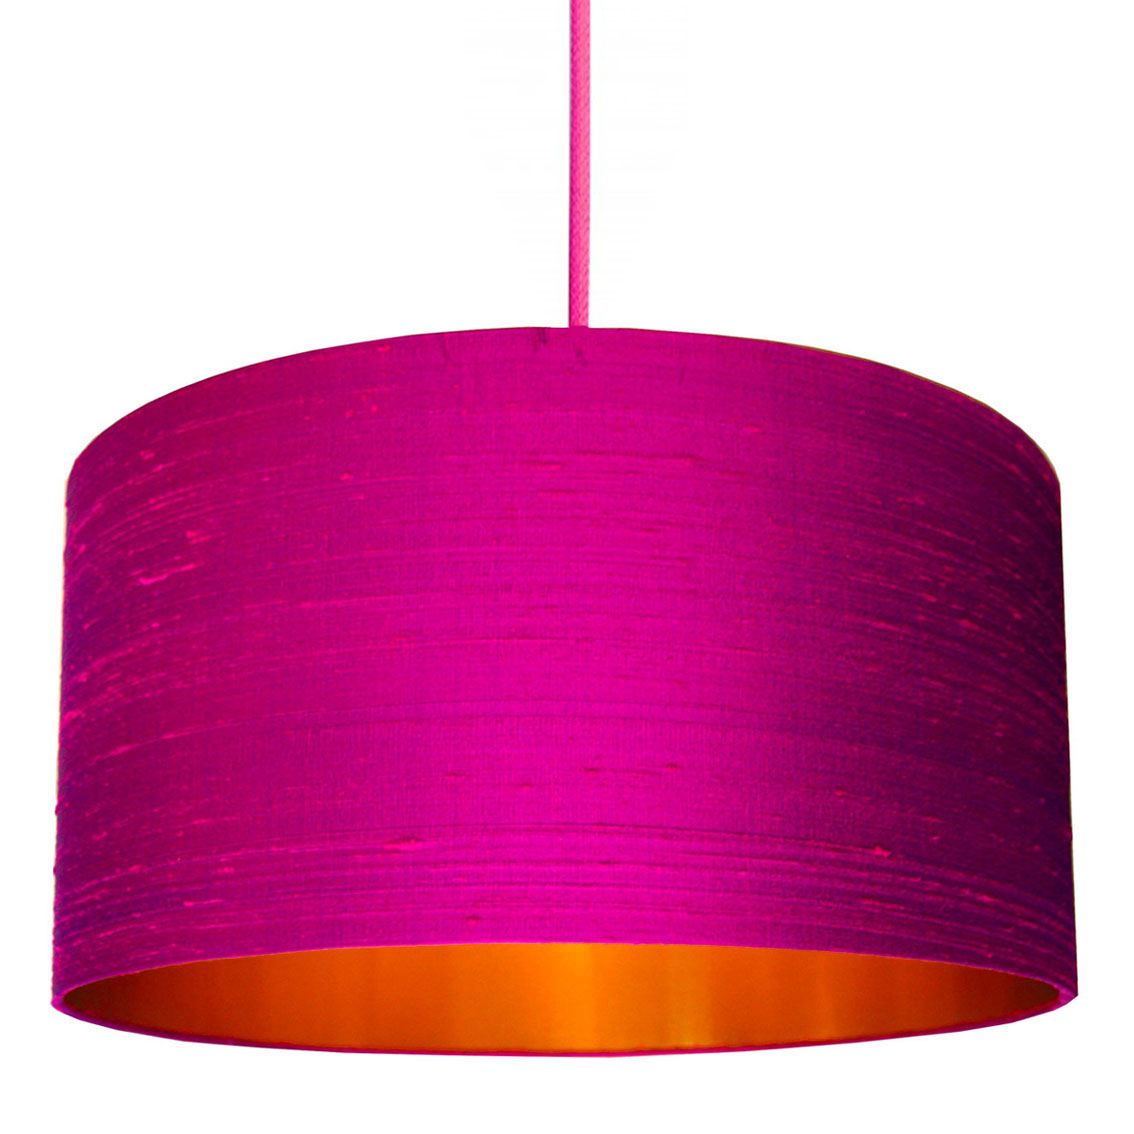 Indian silk lampshade in hot pink with brushed copper lining love hot pink copper lining lampshade aloadofball Images